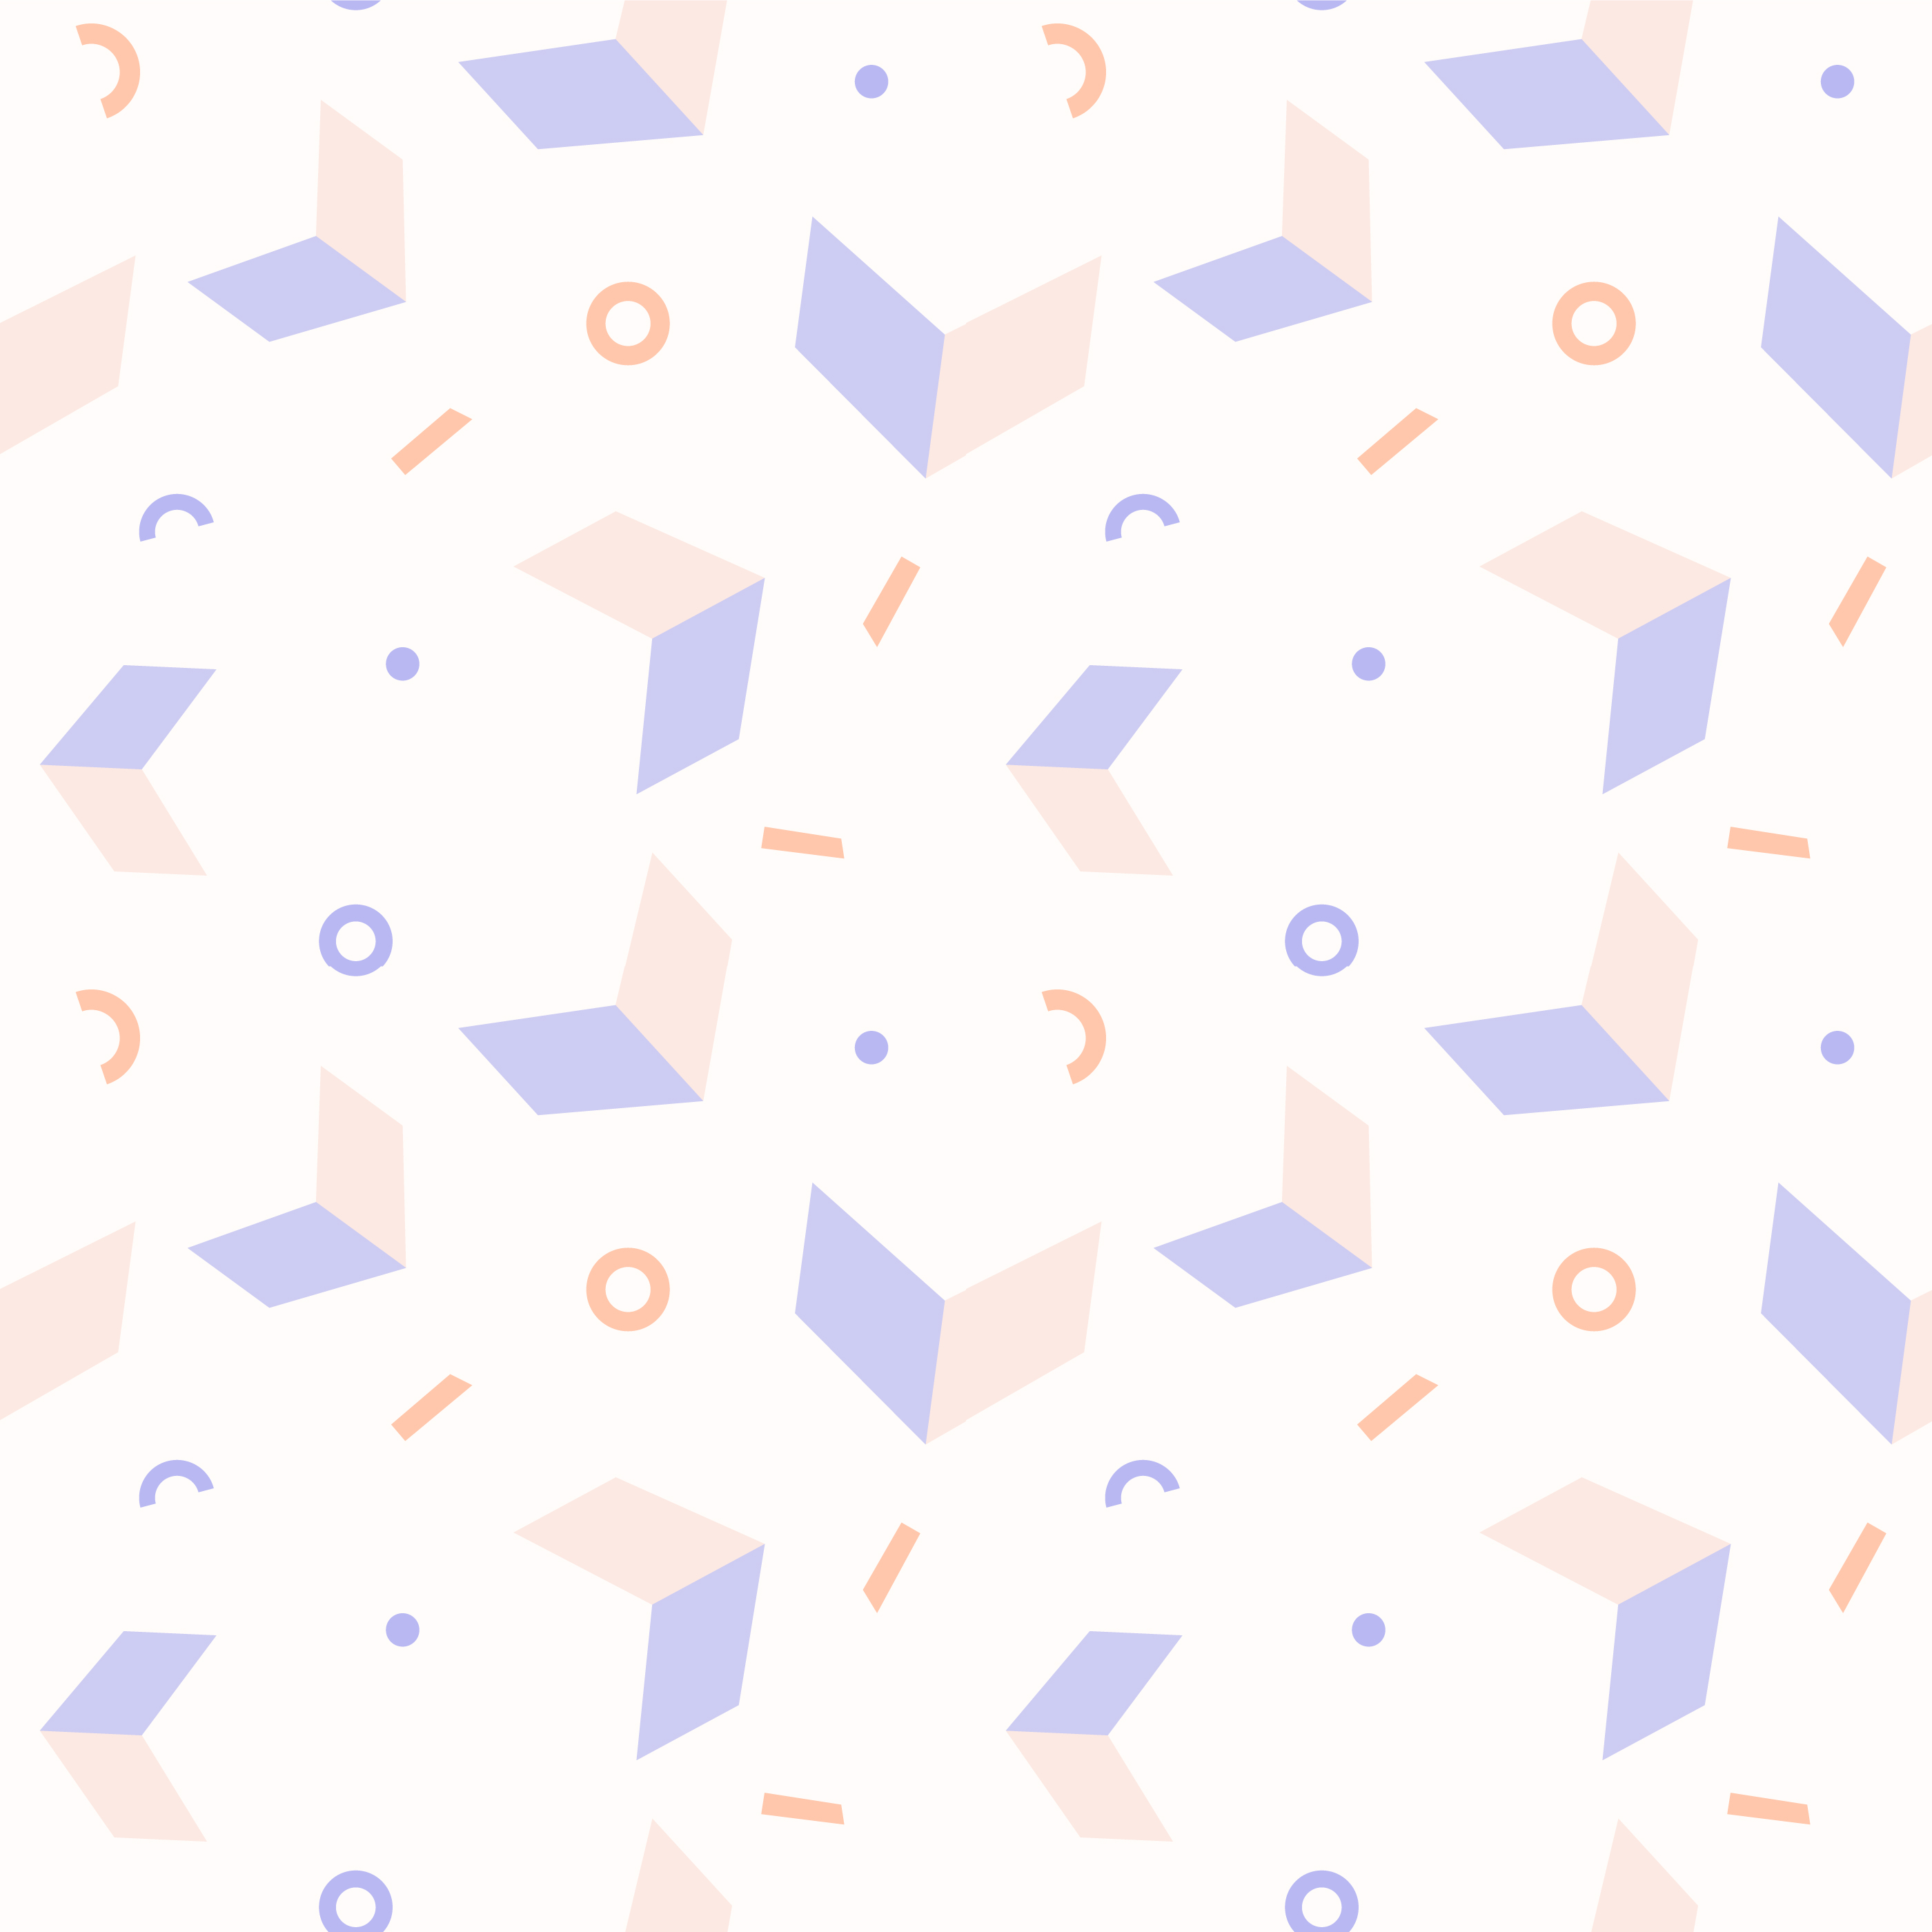 Abstract Pastel Geometric Shapes Seamless Pattern vector